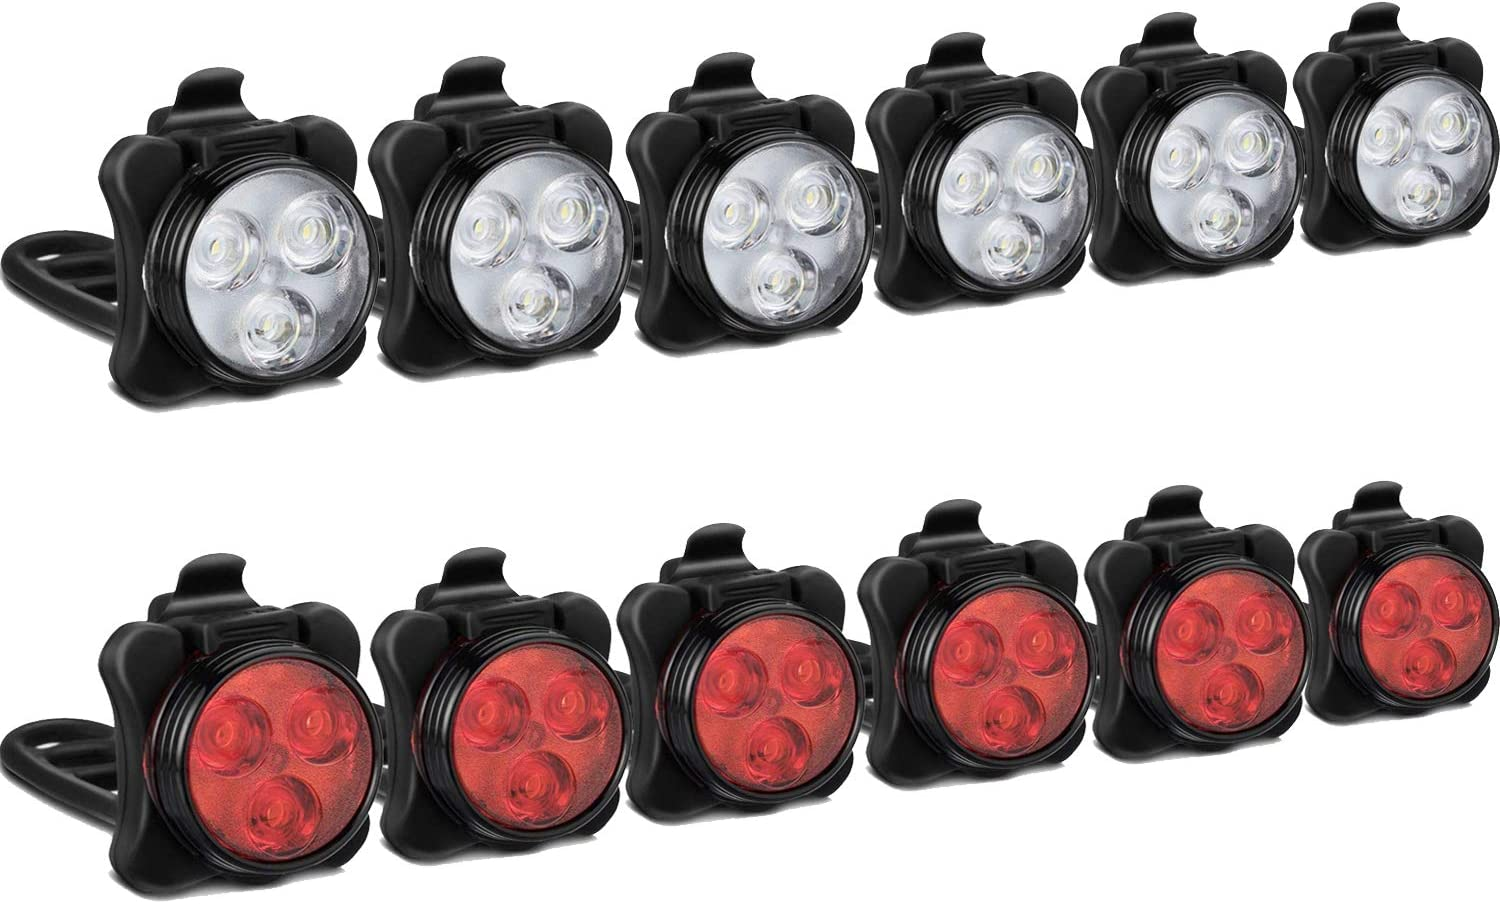 Akale Rechargeable Bike Light Set, LED Bicycle Lights Front and Rear, 4 Light Mode Options, 650mah Lithium Battery, Bike Headlight, IPX4 Waterproof, Easy to Install for Kids Men Women Road 6 Pack